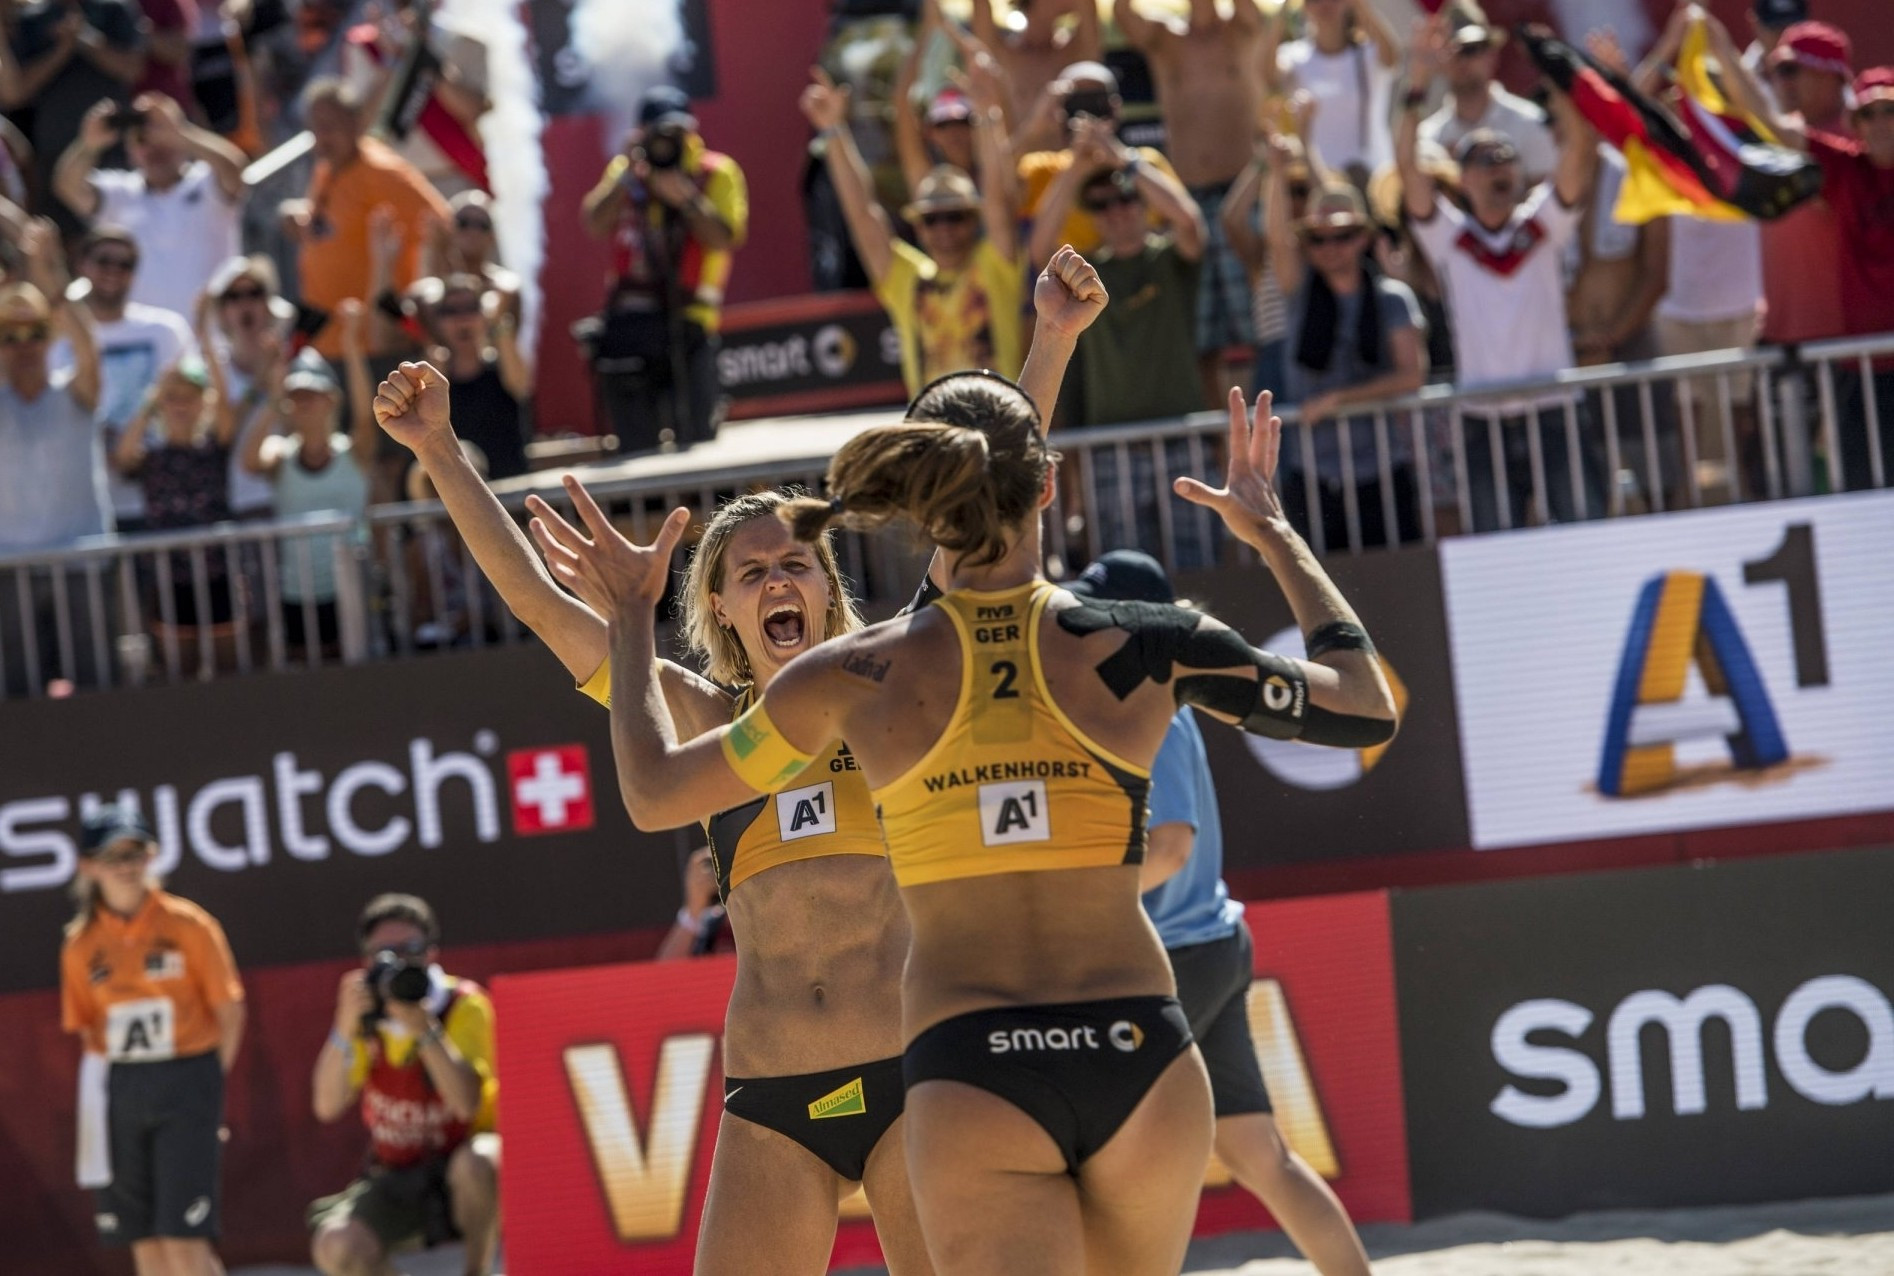 German duo looking to defend crown at FIVB Beach World Tour Finals